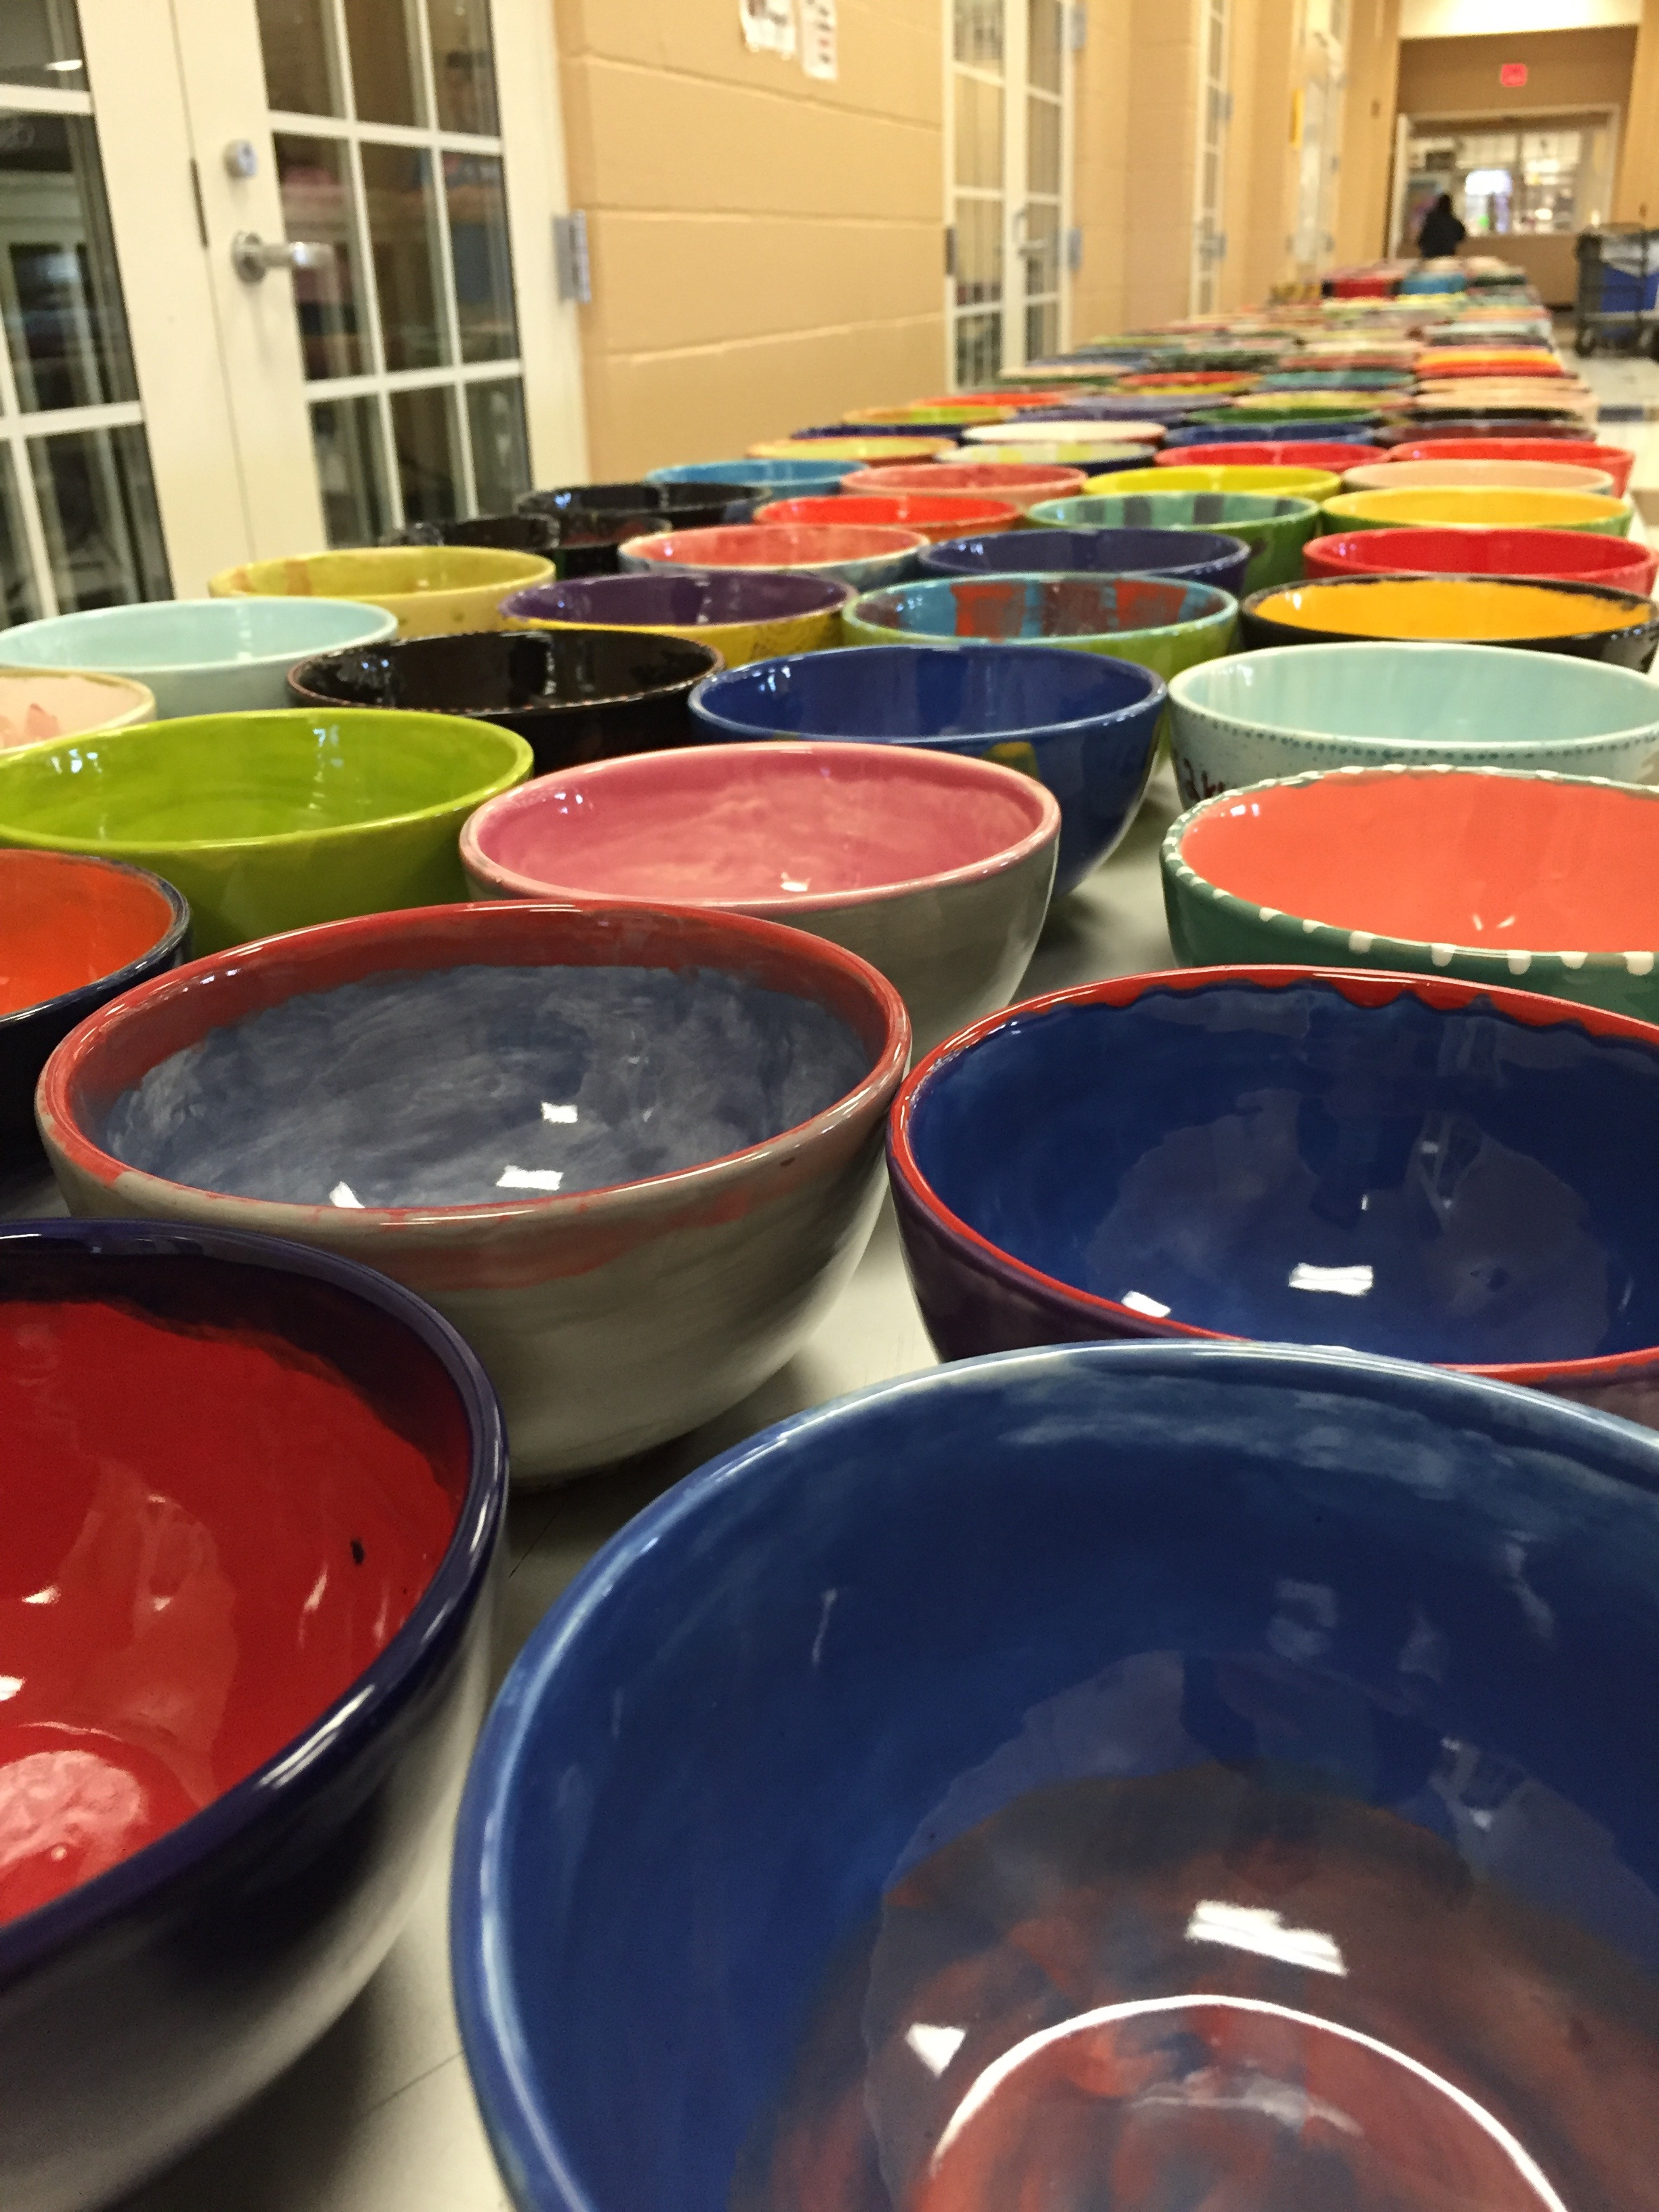 Join the Souper Supper on March 9th and stick around to paint your own bowl for the upcoming Empty Bowls event on April 20th.